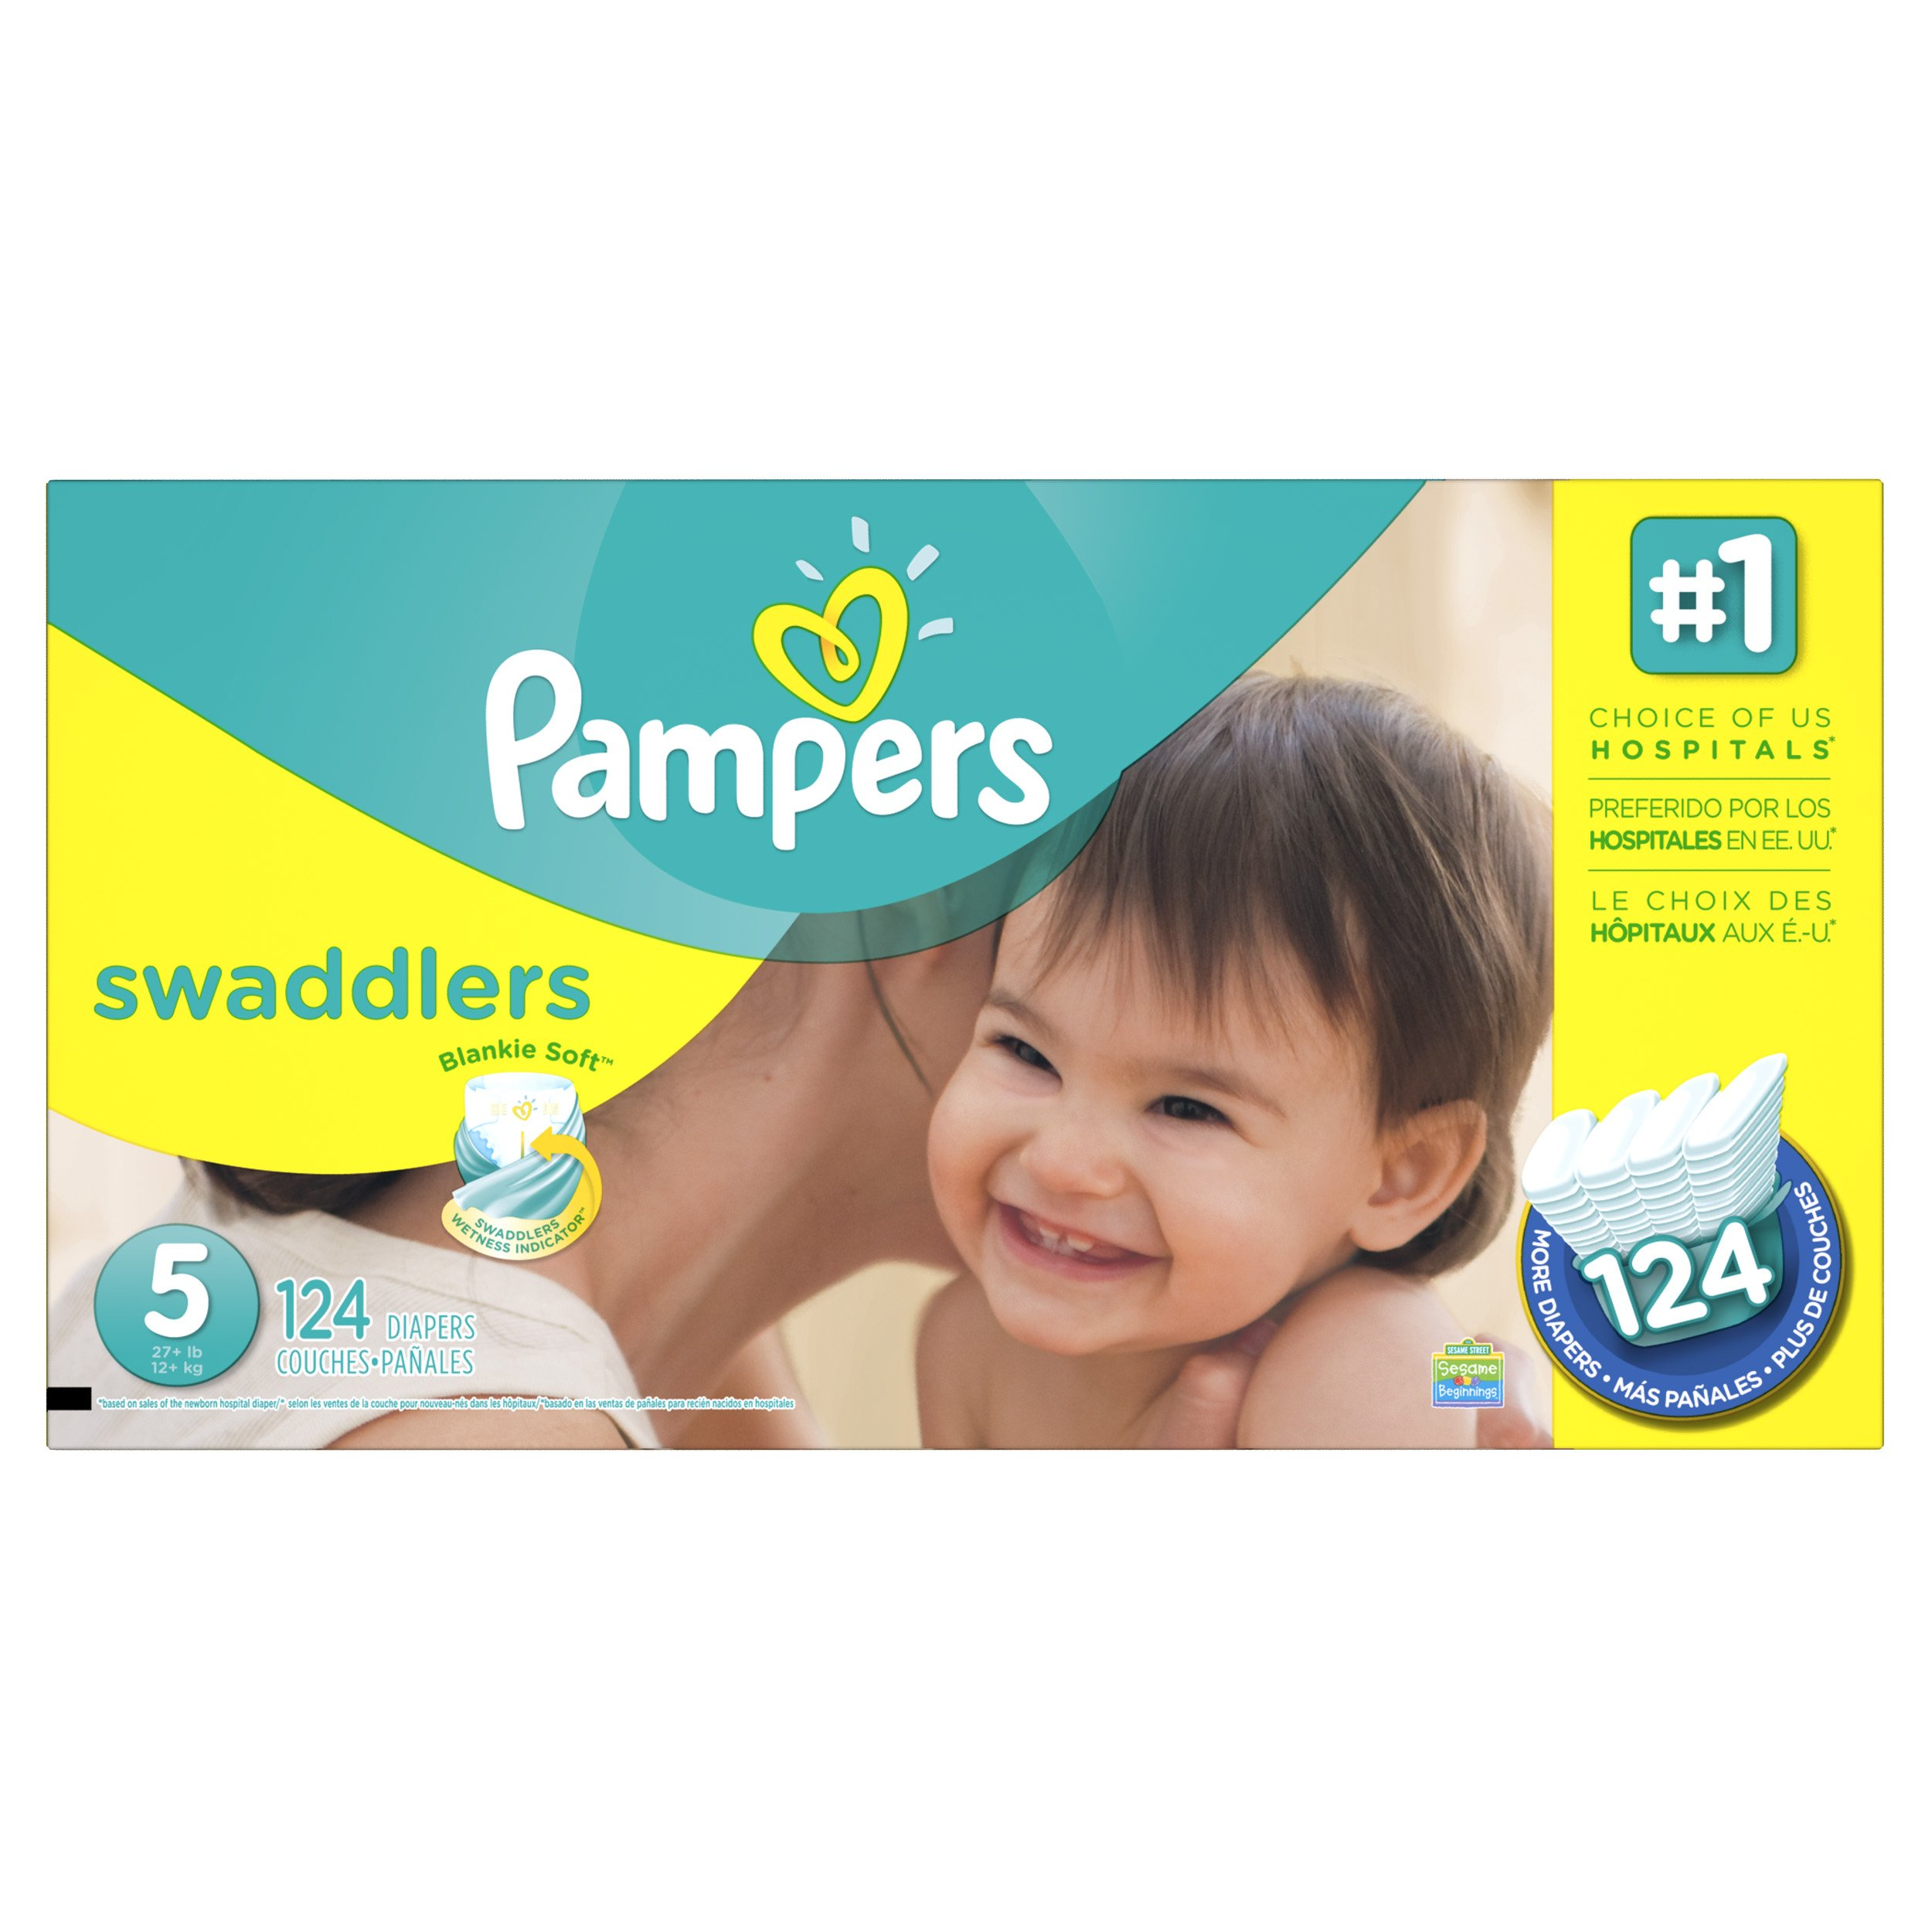 Pampers Swadlers Size 5